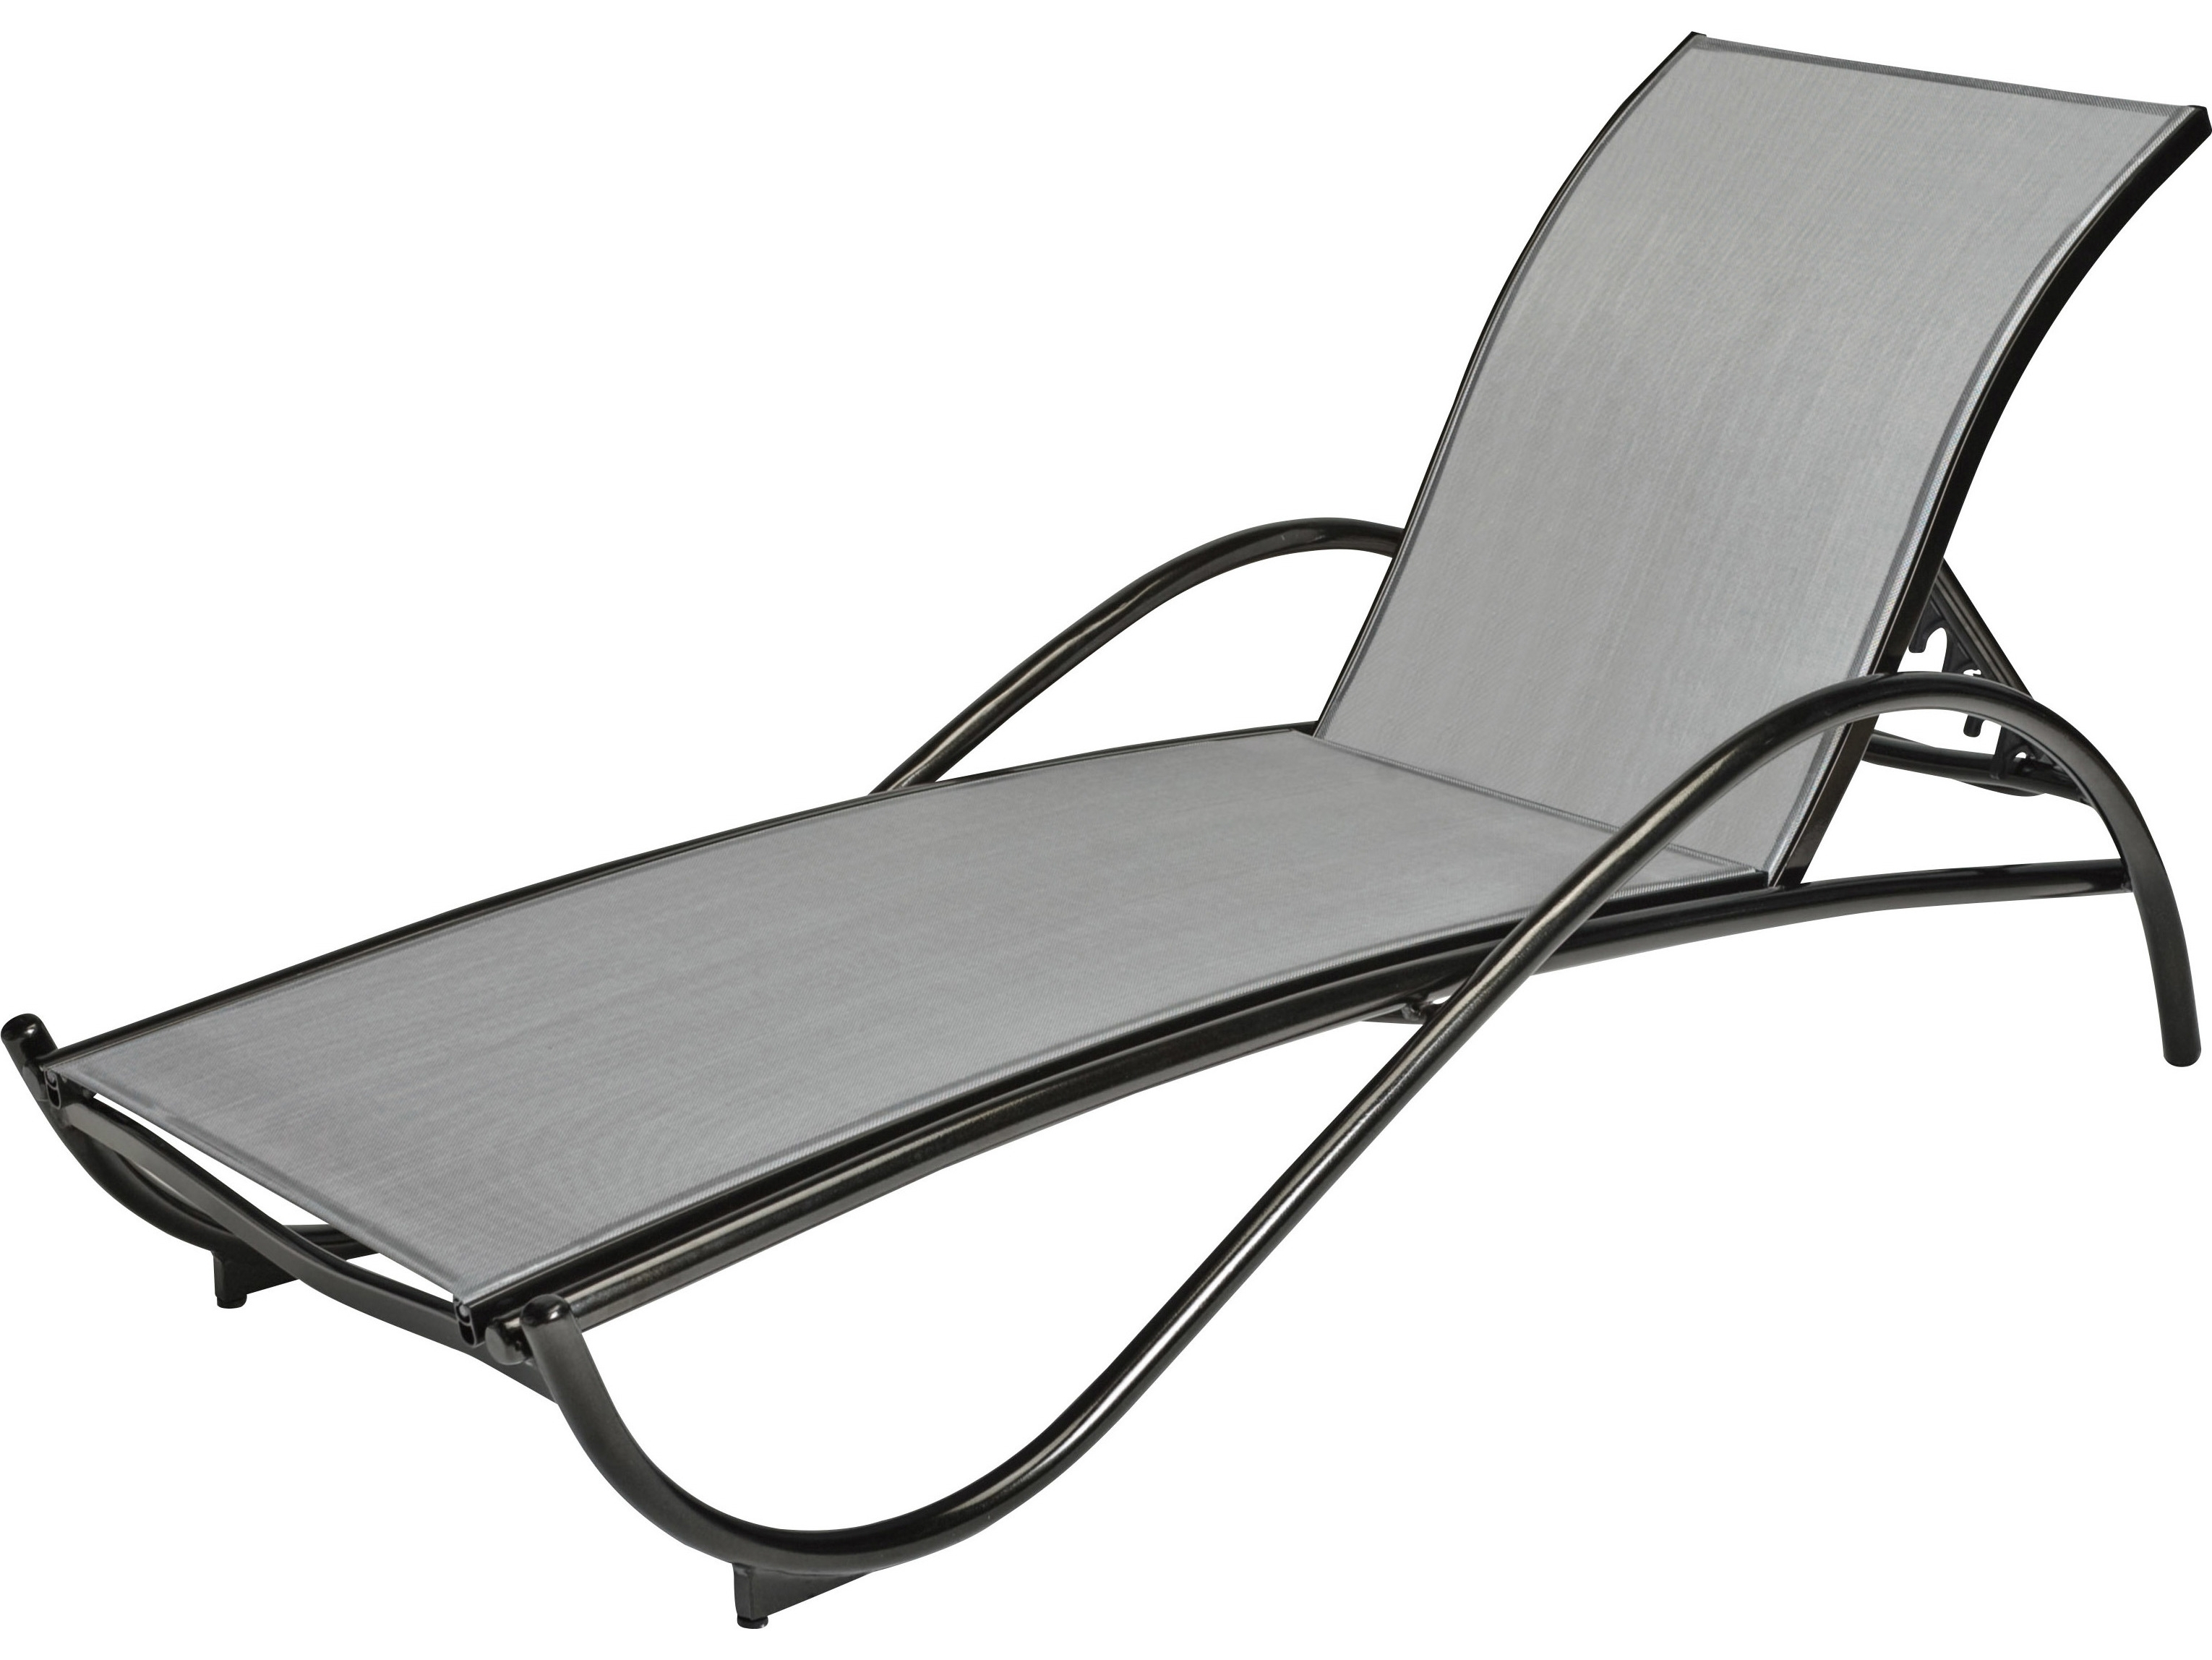 Picture 4 Of 38 – Lounge Outdoor Chairs Elegant Woodard Tribeca For Well Liked Outdoor Chaise Lounge Chairs With Arms (View 15 of 15)